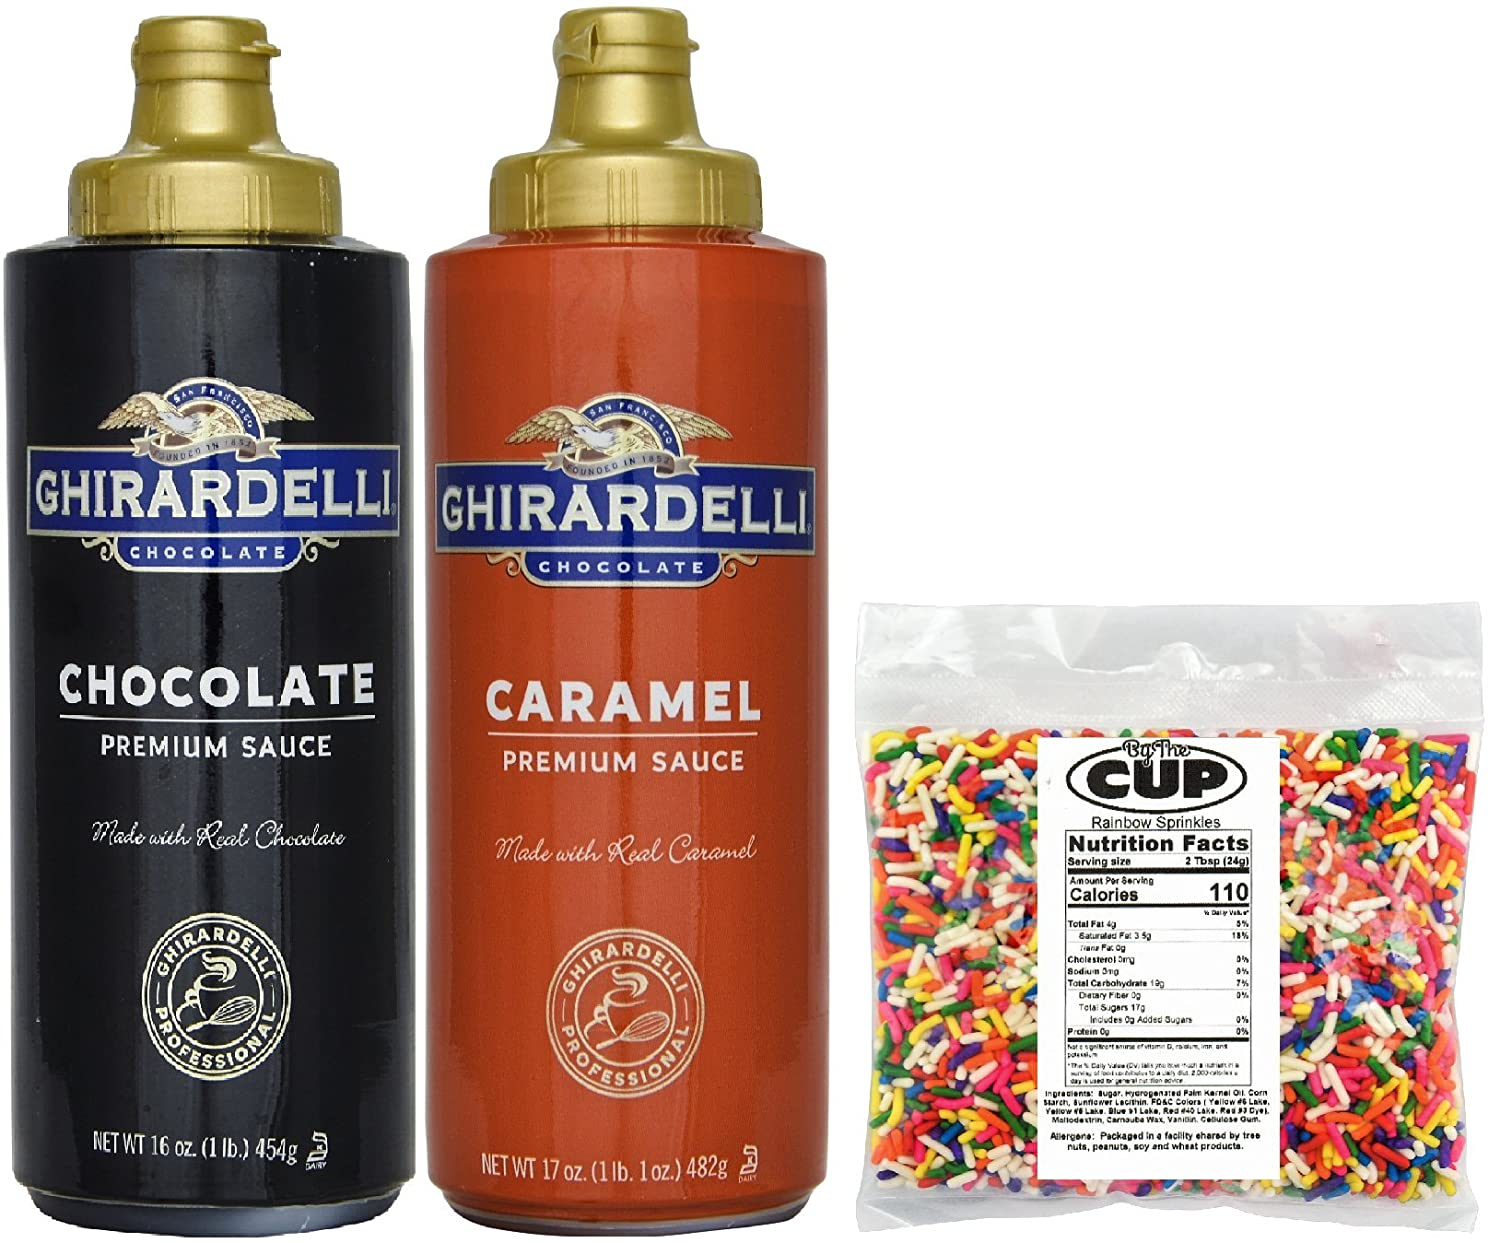 Ghirardelli - 16 Ounce Chocolate & 17 Ounce Caramel Sauce Squeeze Bottles (Pack of 2) - with 4 Ounce Bag By The Cup Rainbow Sprinkles